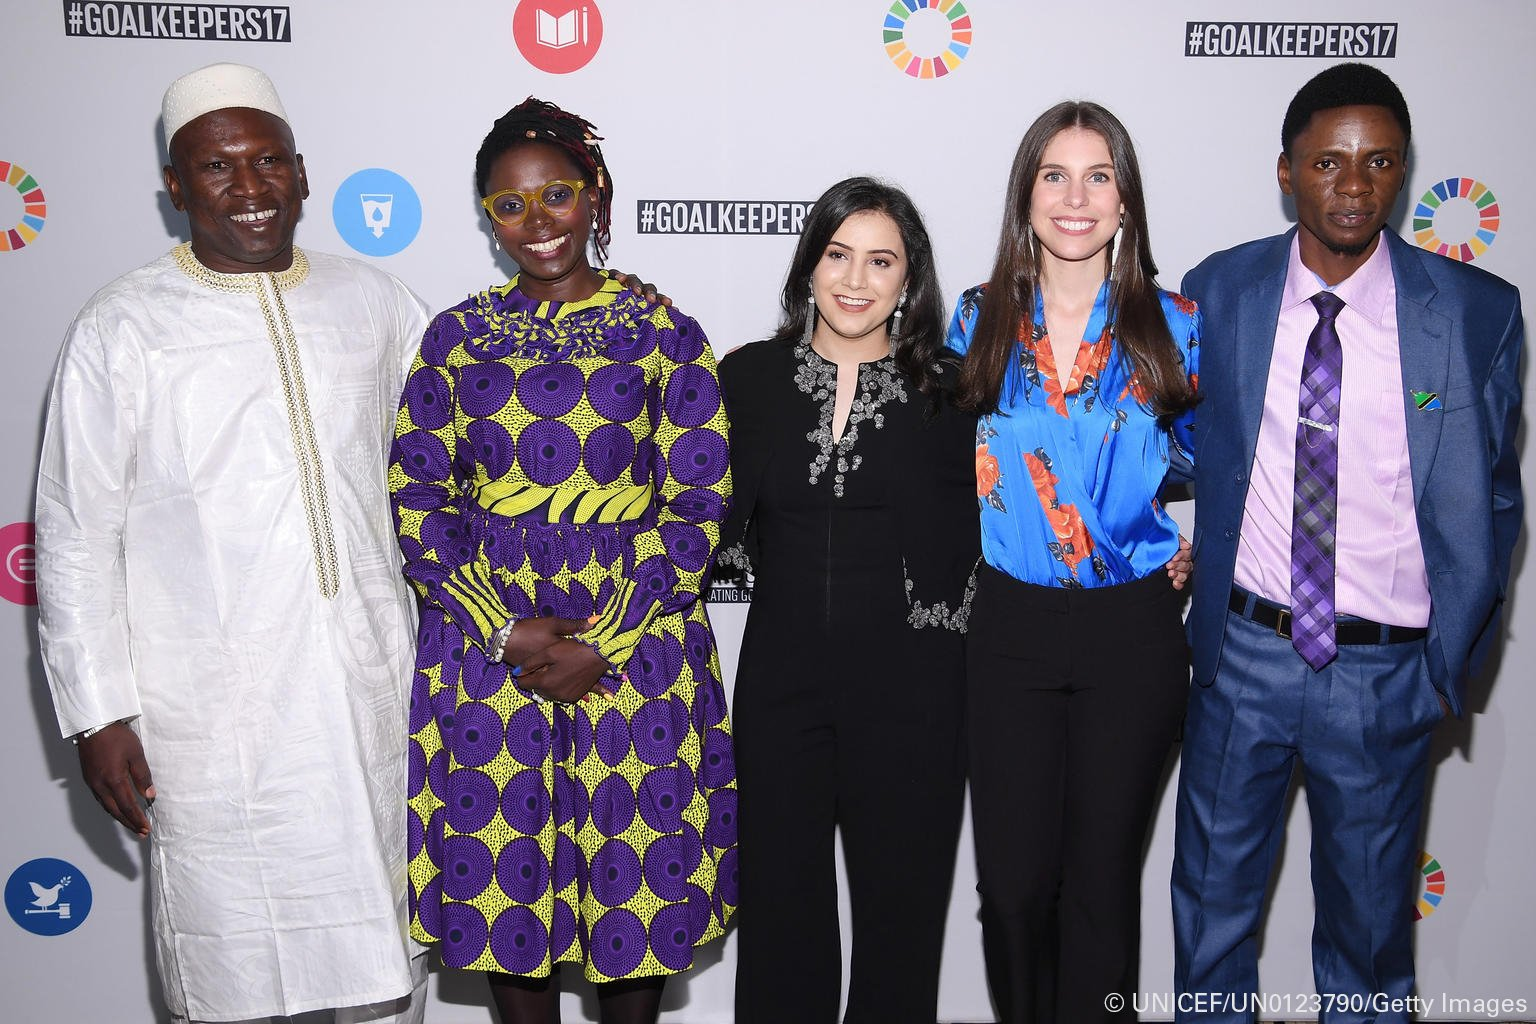 ������  Meet the winners of the #GlobalGoalsAwards 2017! https://t.co/sASEOZWKnZ #GlobalGoals #UNGA https://t.co/TcavrSkFoE